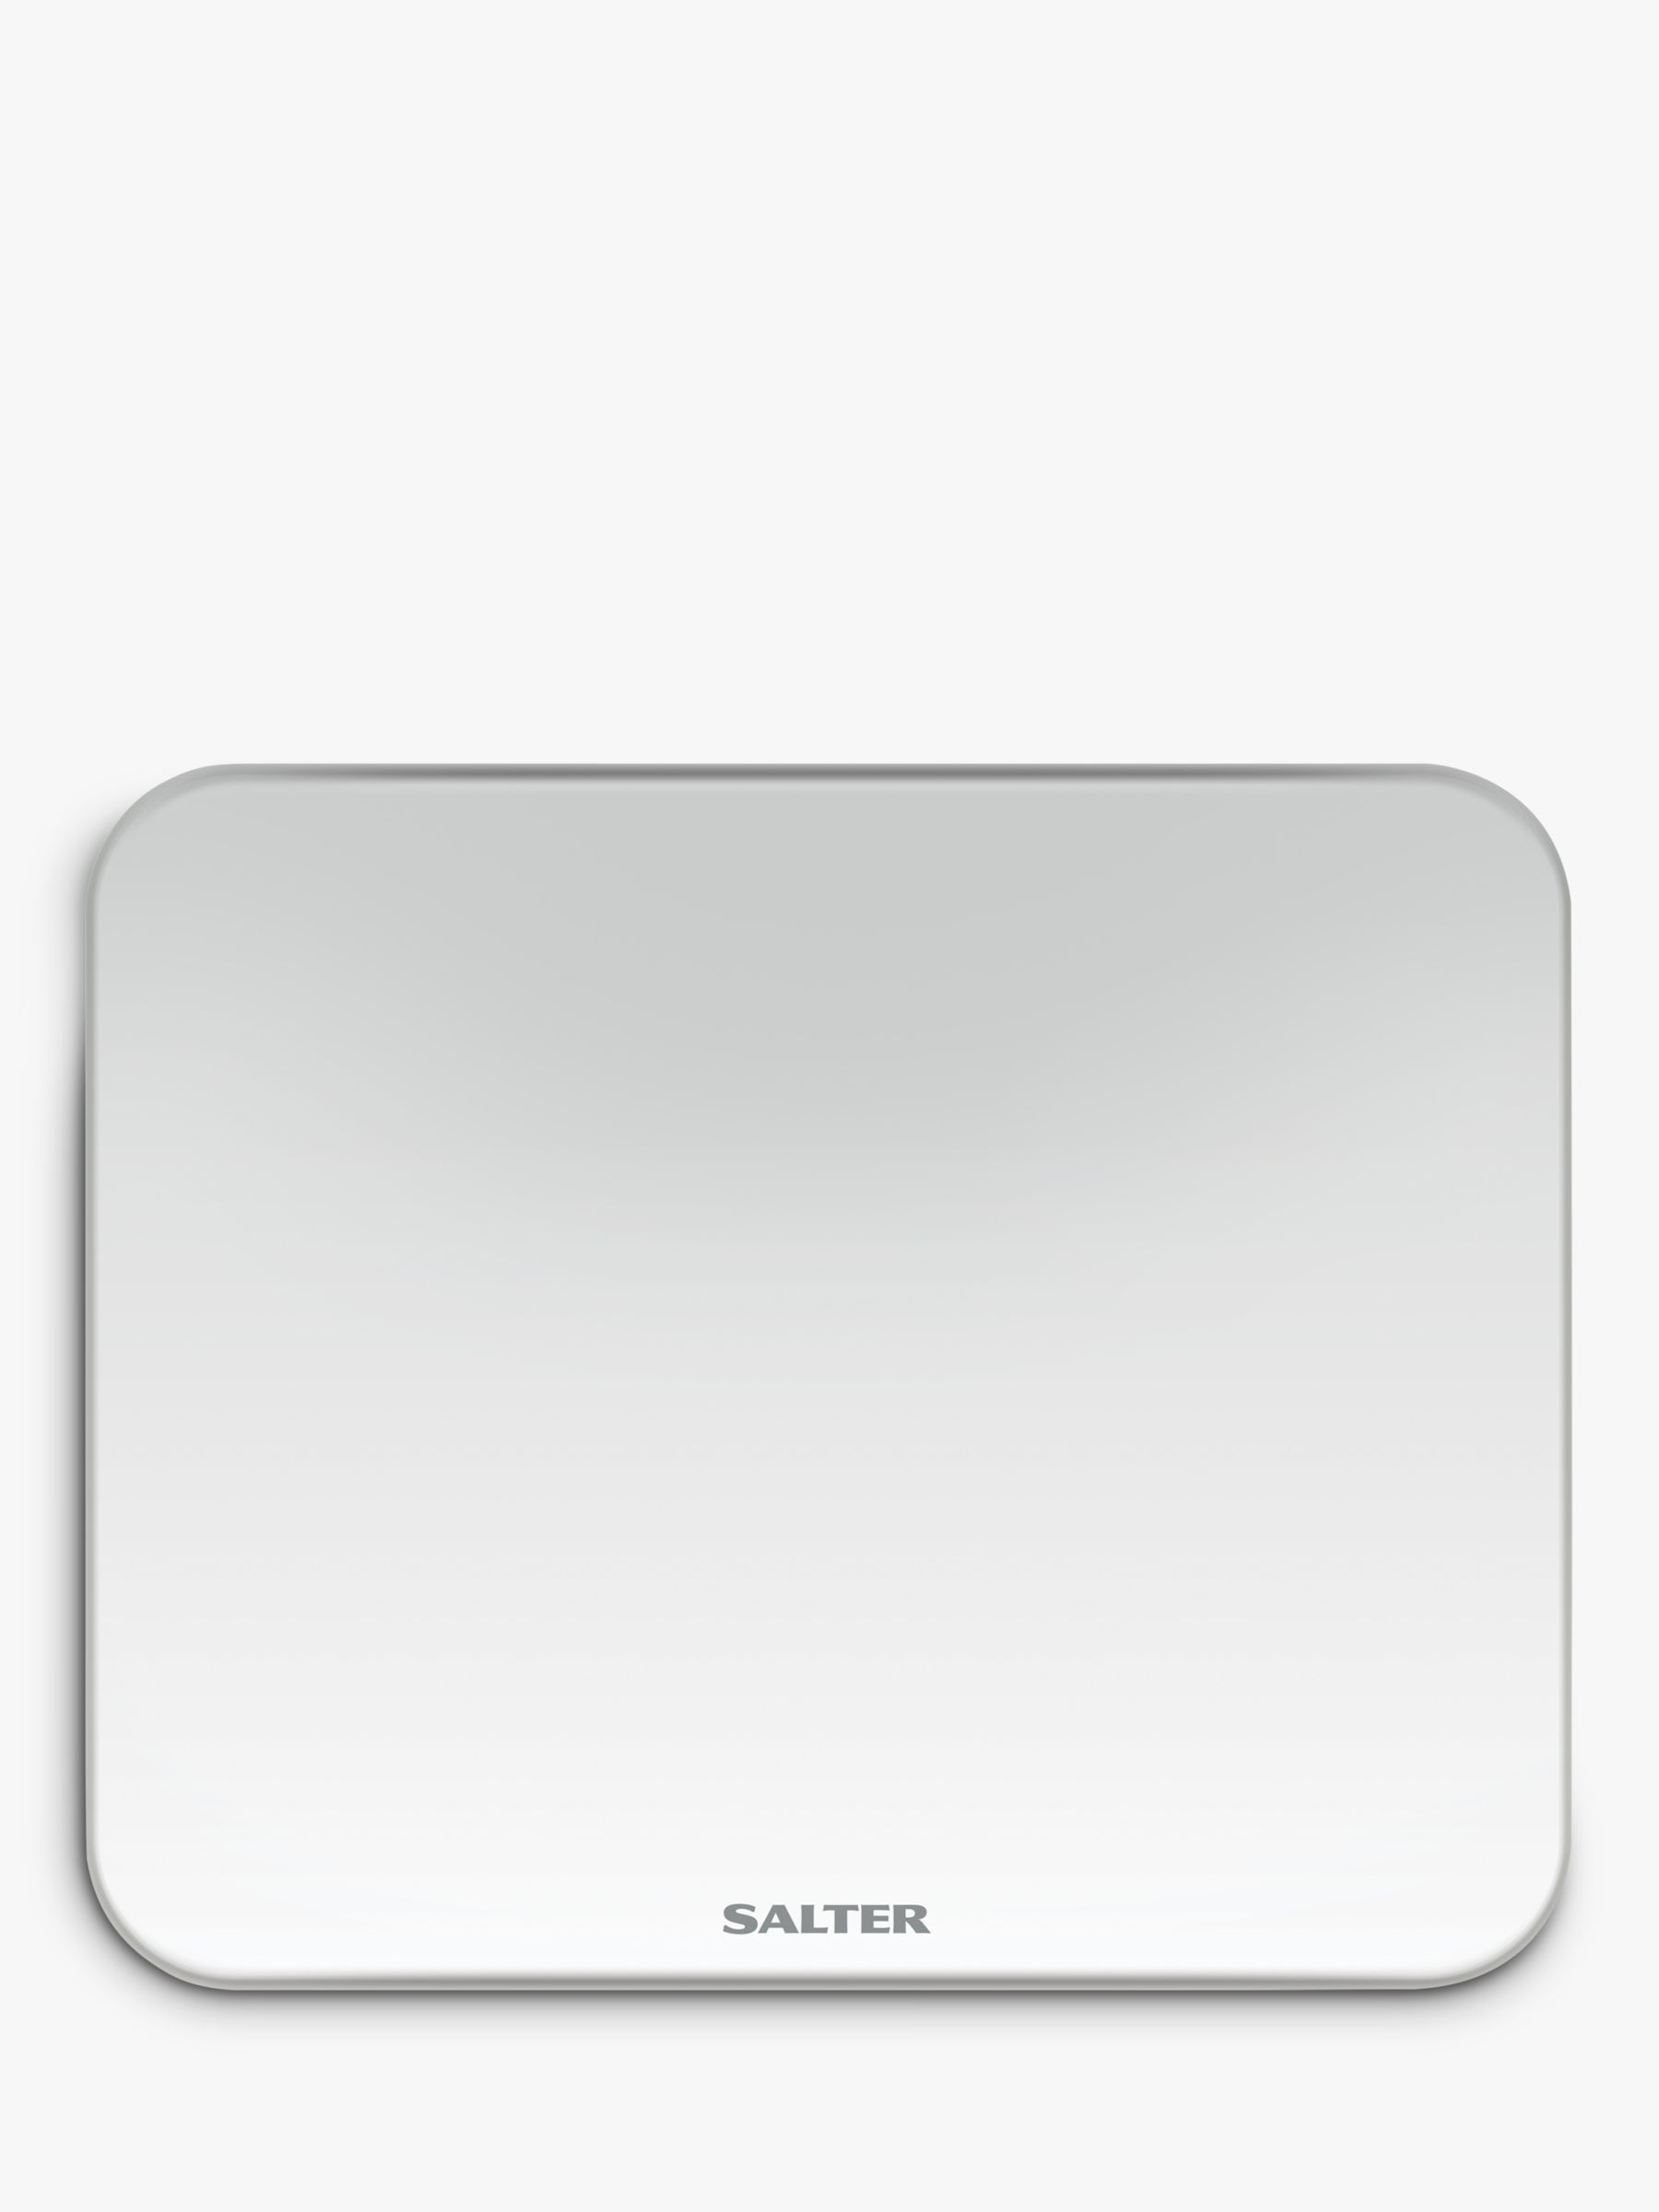 Salter Salter 9204 LED Bathroom Scale